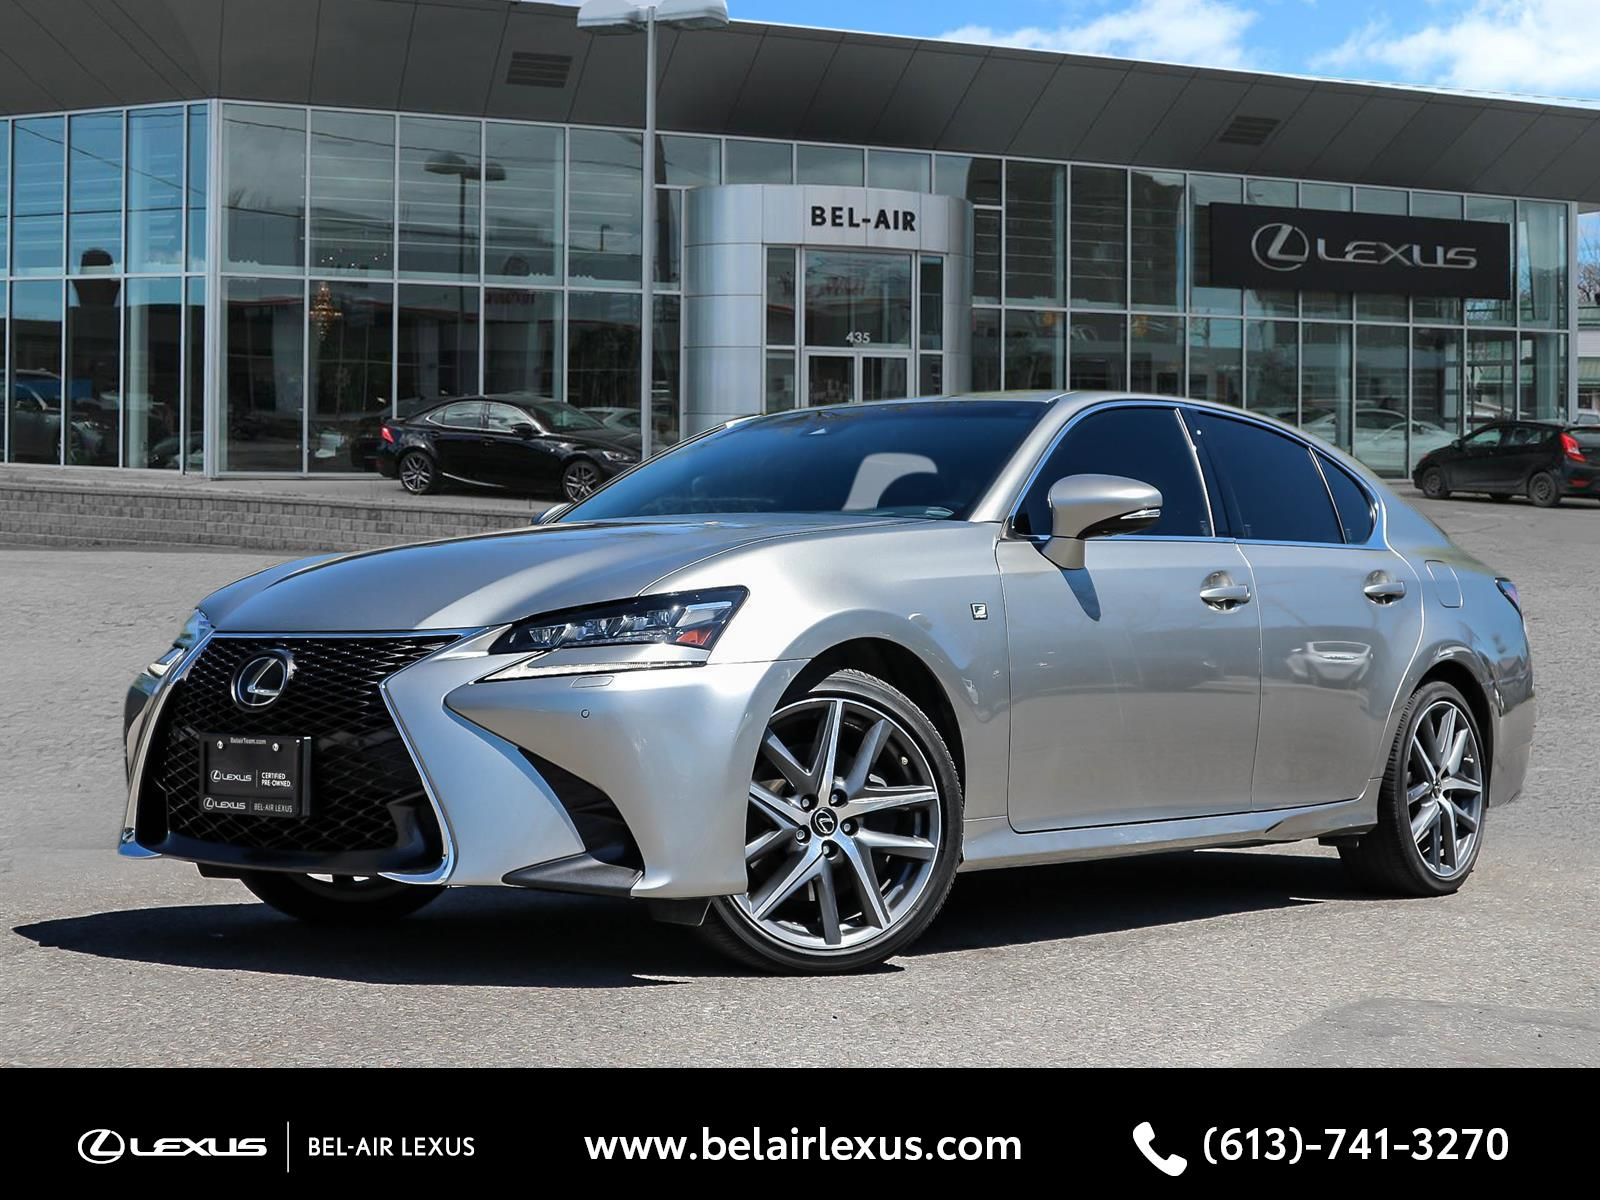 2018 Lexus GS 350 at Bel-Air Lexus